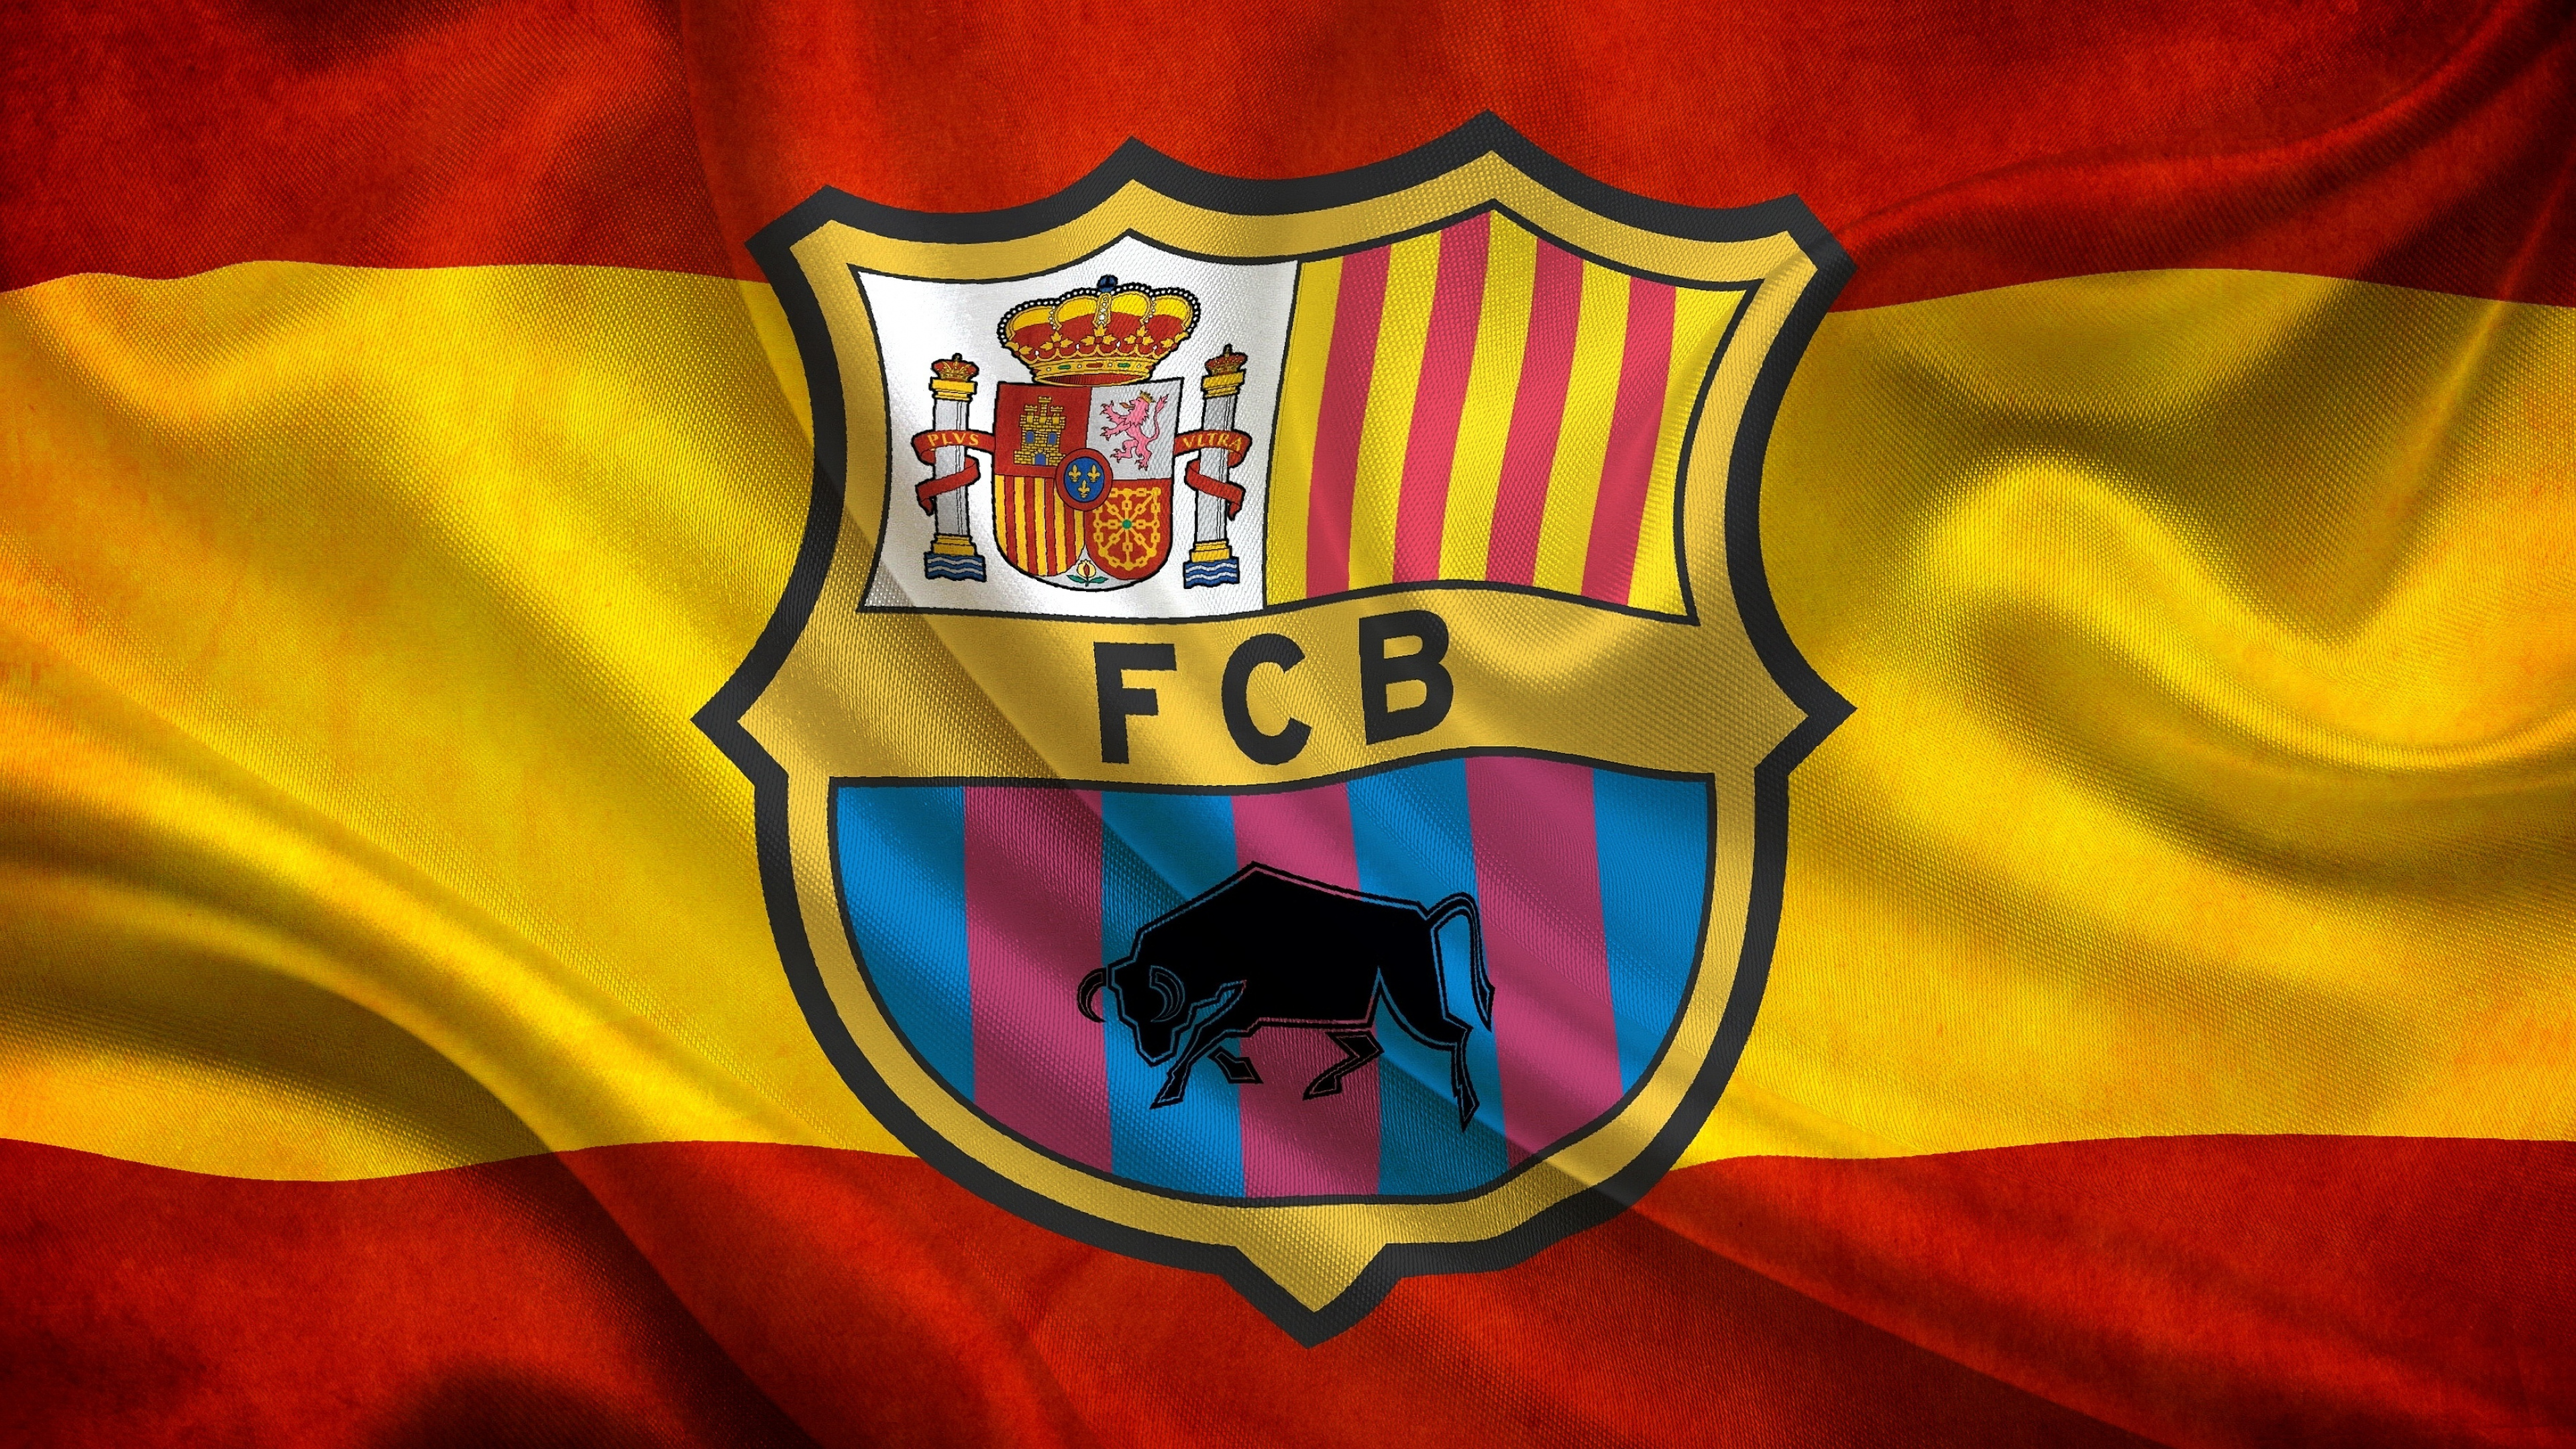 fc barcelona flag 1538786741 - Fc Barcelona Flag - sports wallpapers, games wallpapers, football wallpapers, fc barcelona wallpapers